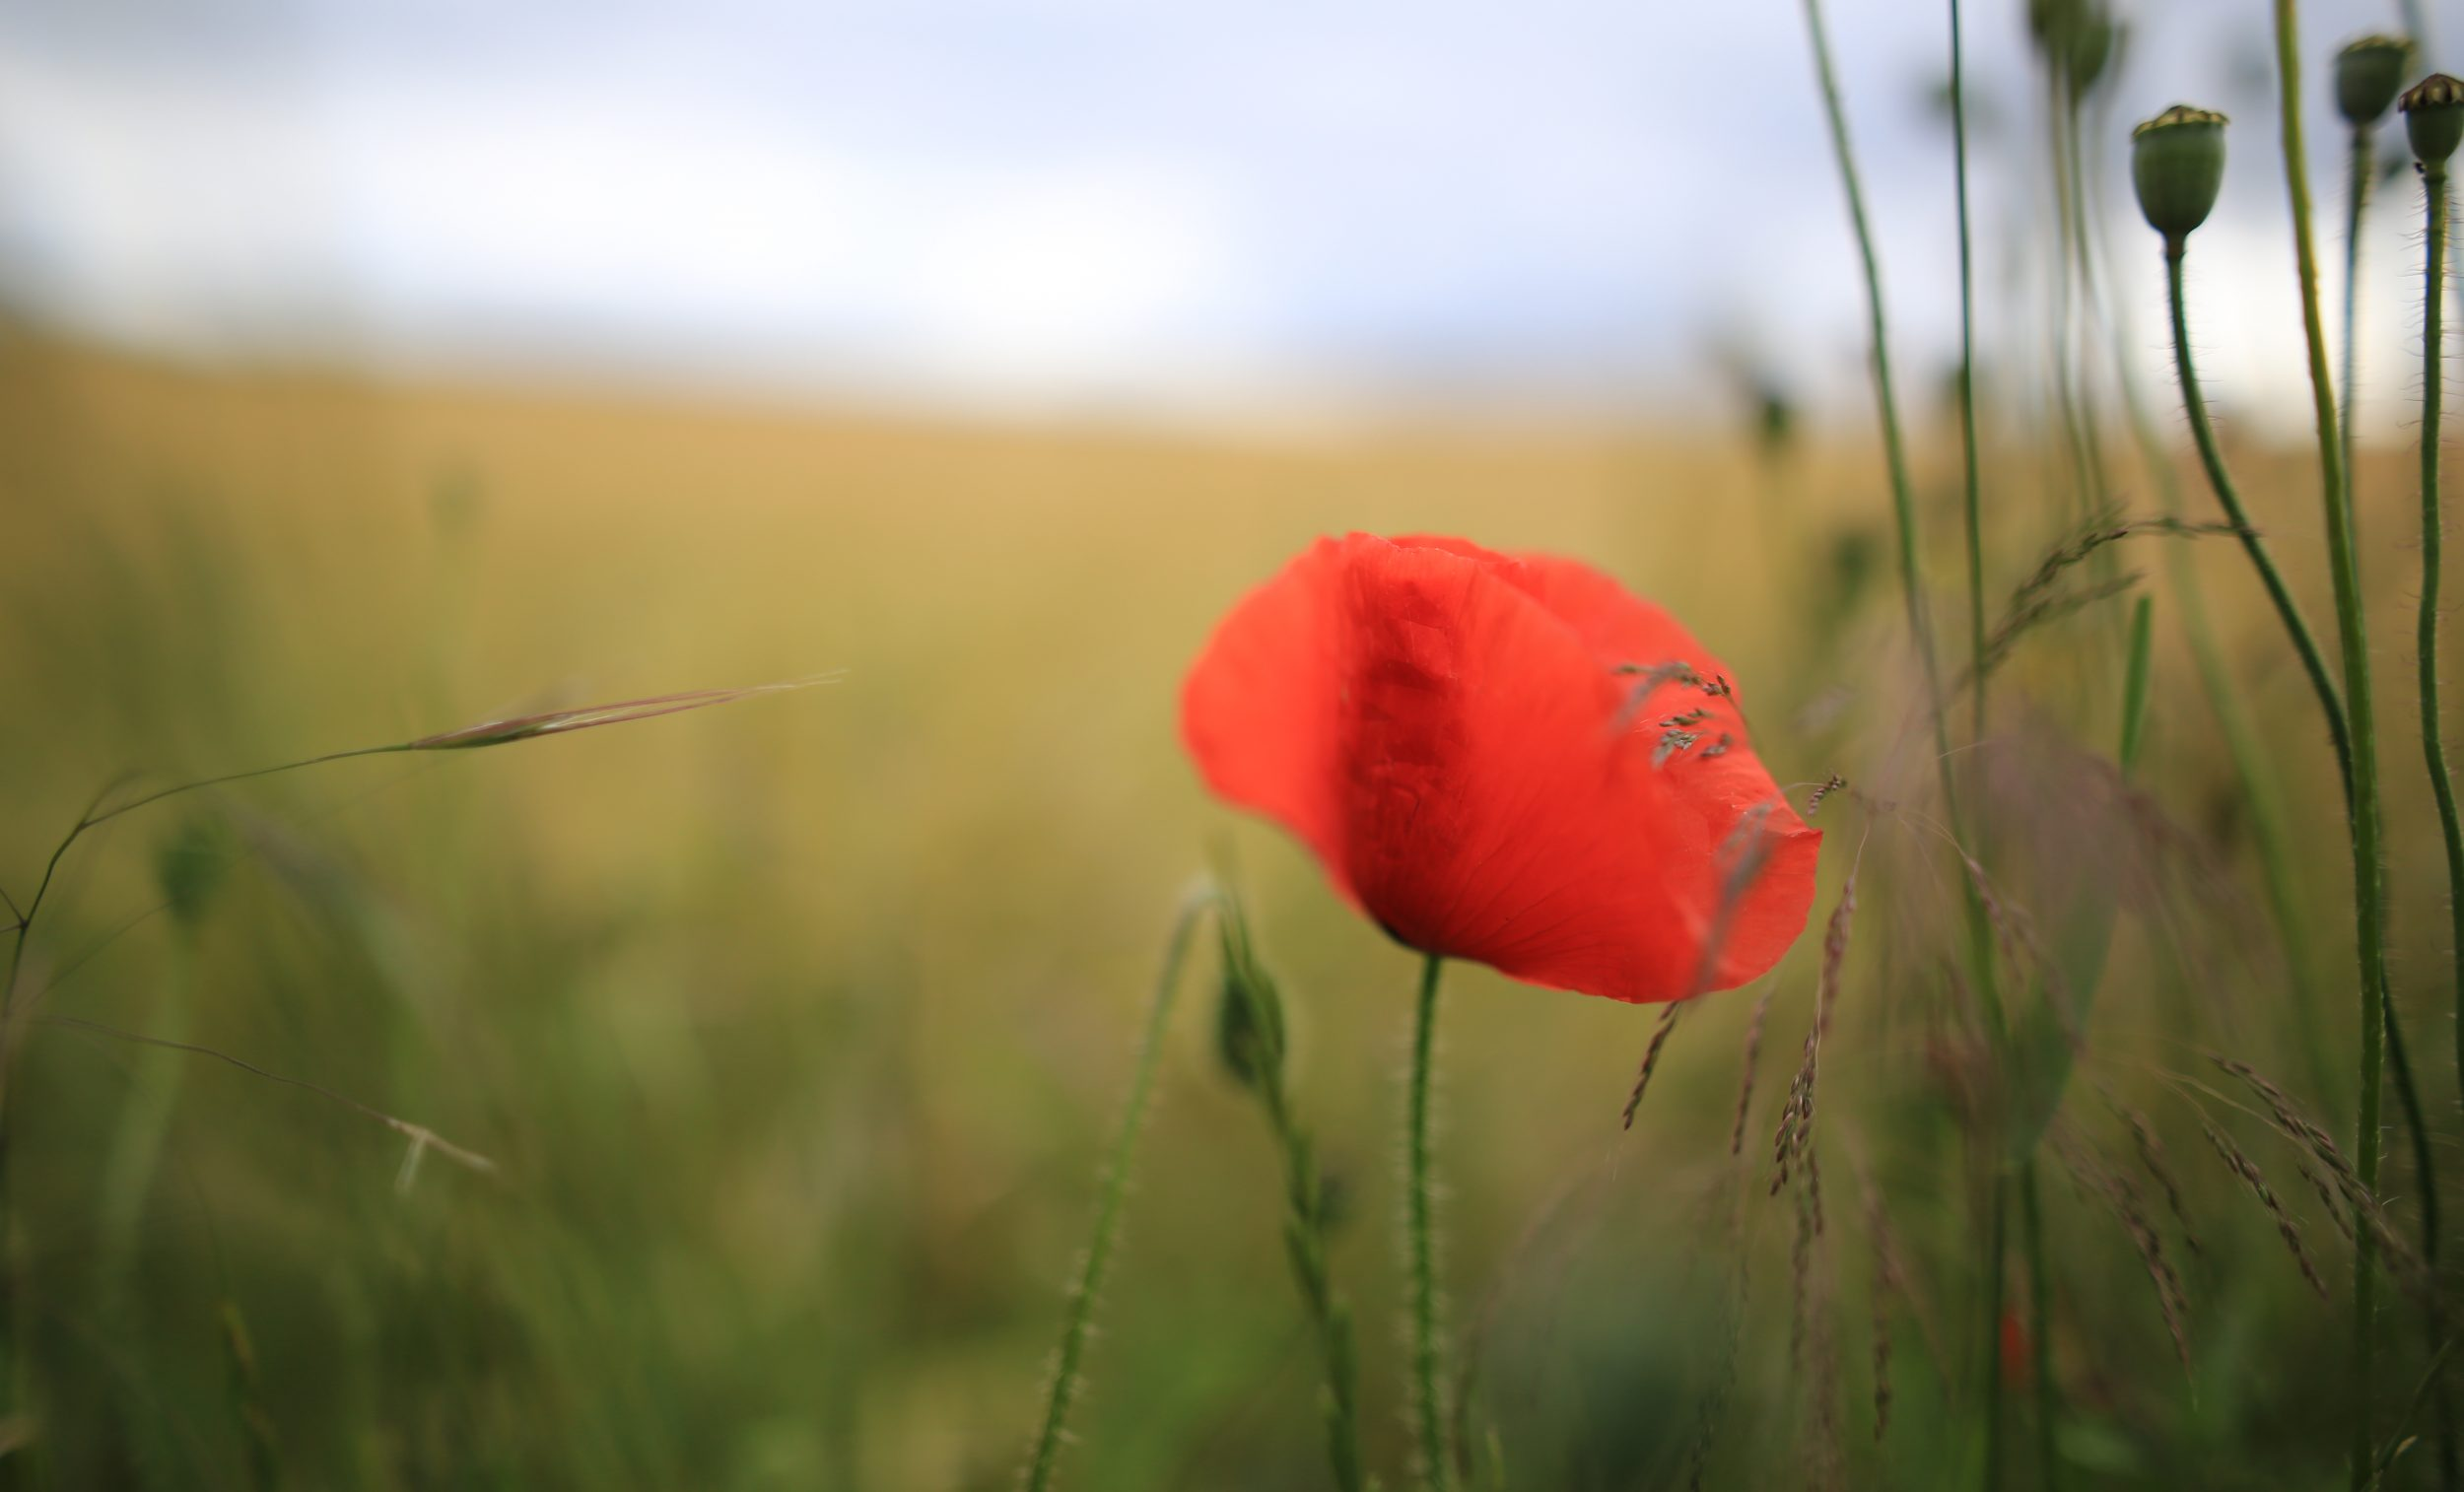 Poppy by Pascal Volk - used under Creative Commons License